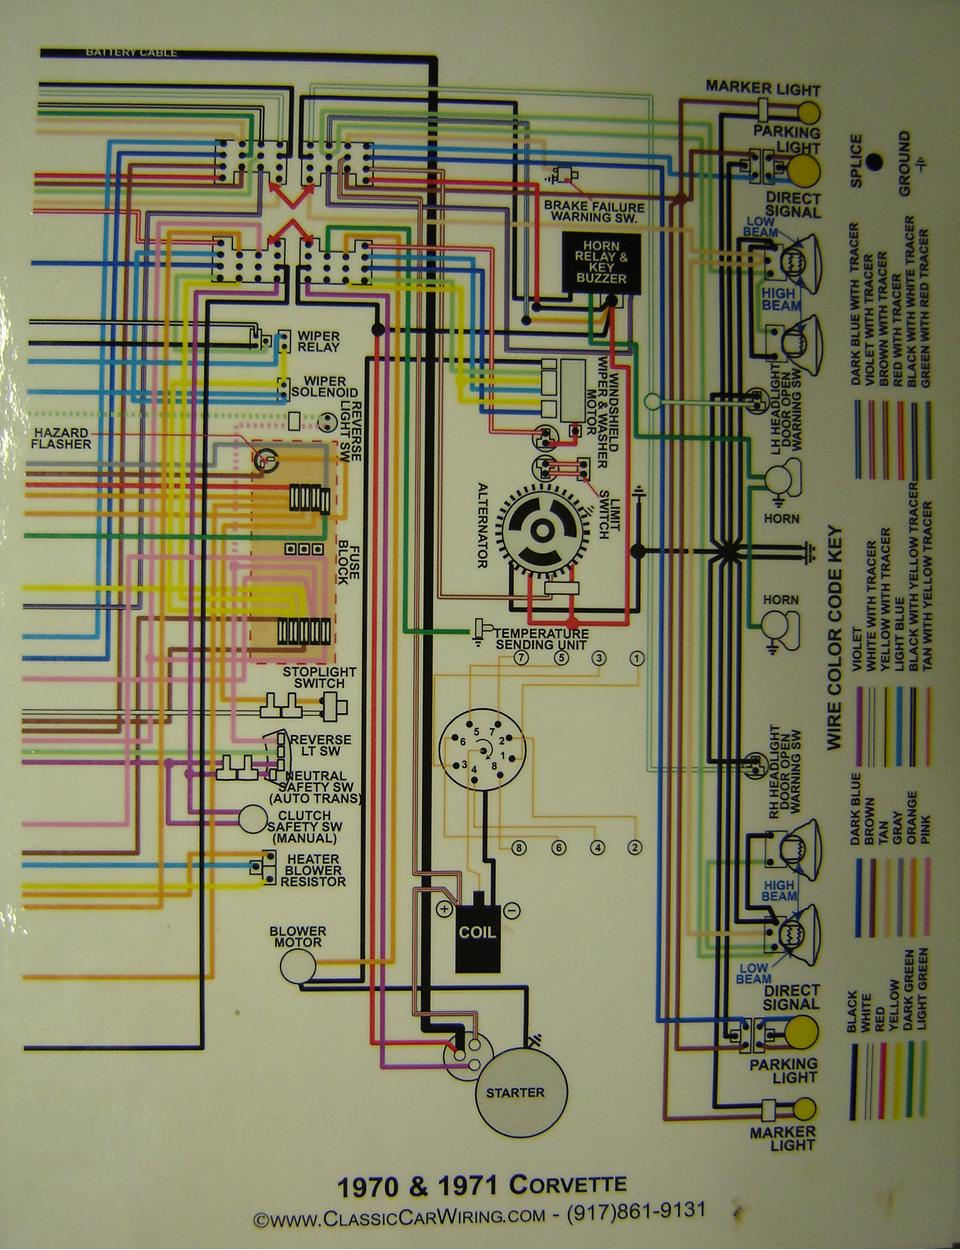 1972 Chevy C10 Ac Wiring Diagram | Wiring Diagram on 1970 gmc wiring harness, 1990 chevy c1500 wiring harness, gmc truck wiring harness, 1995 gmc wiring harness,